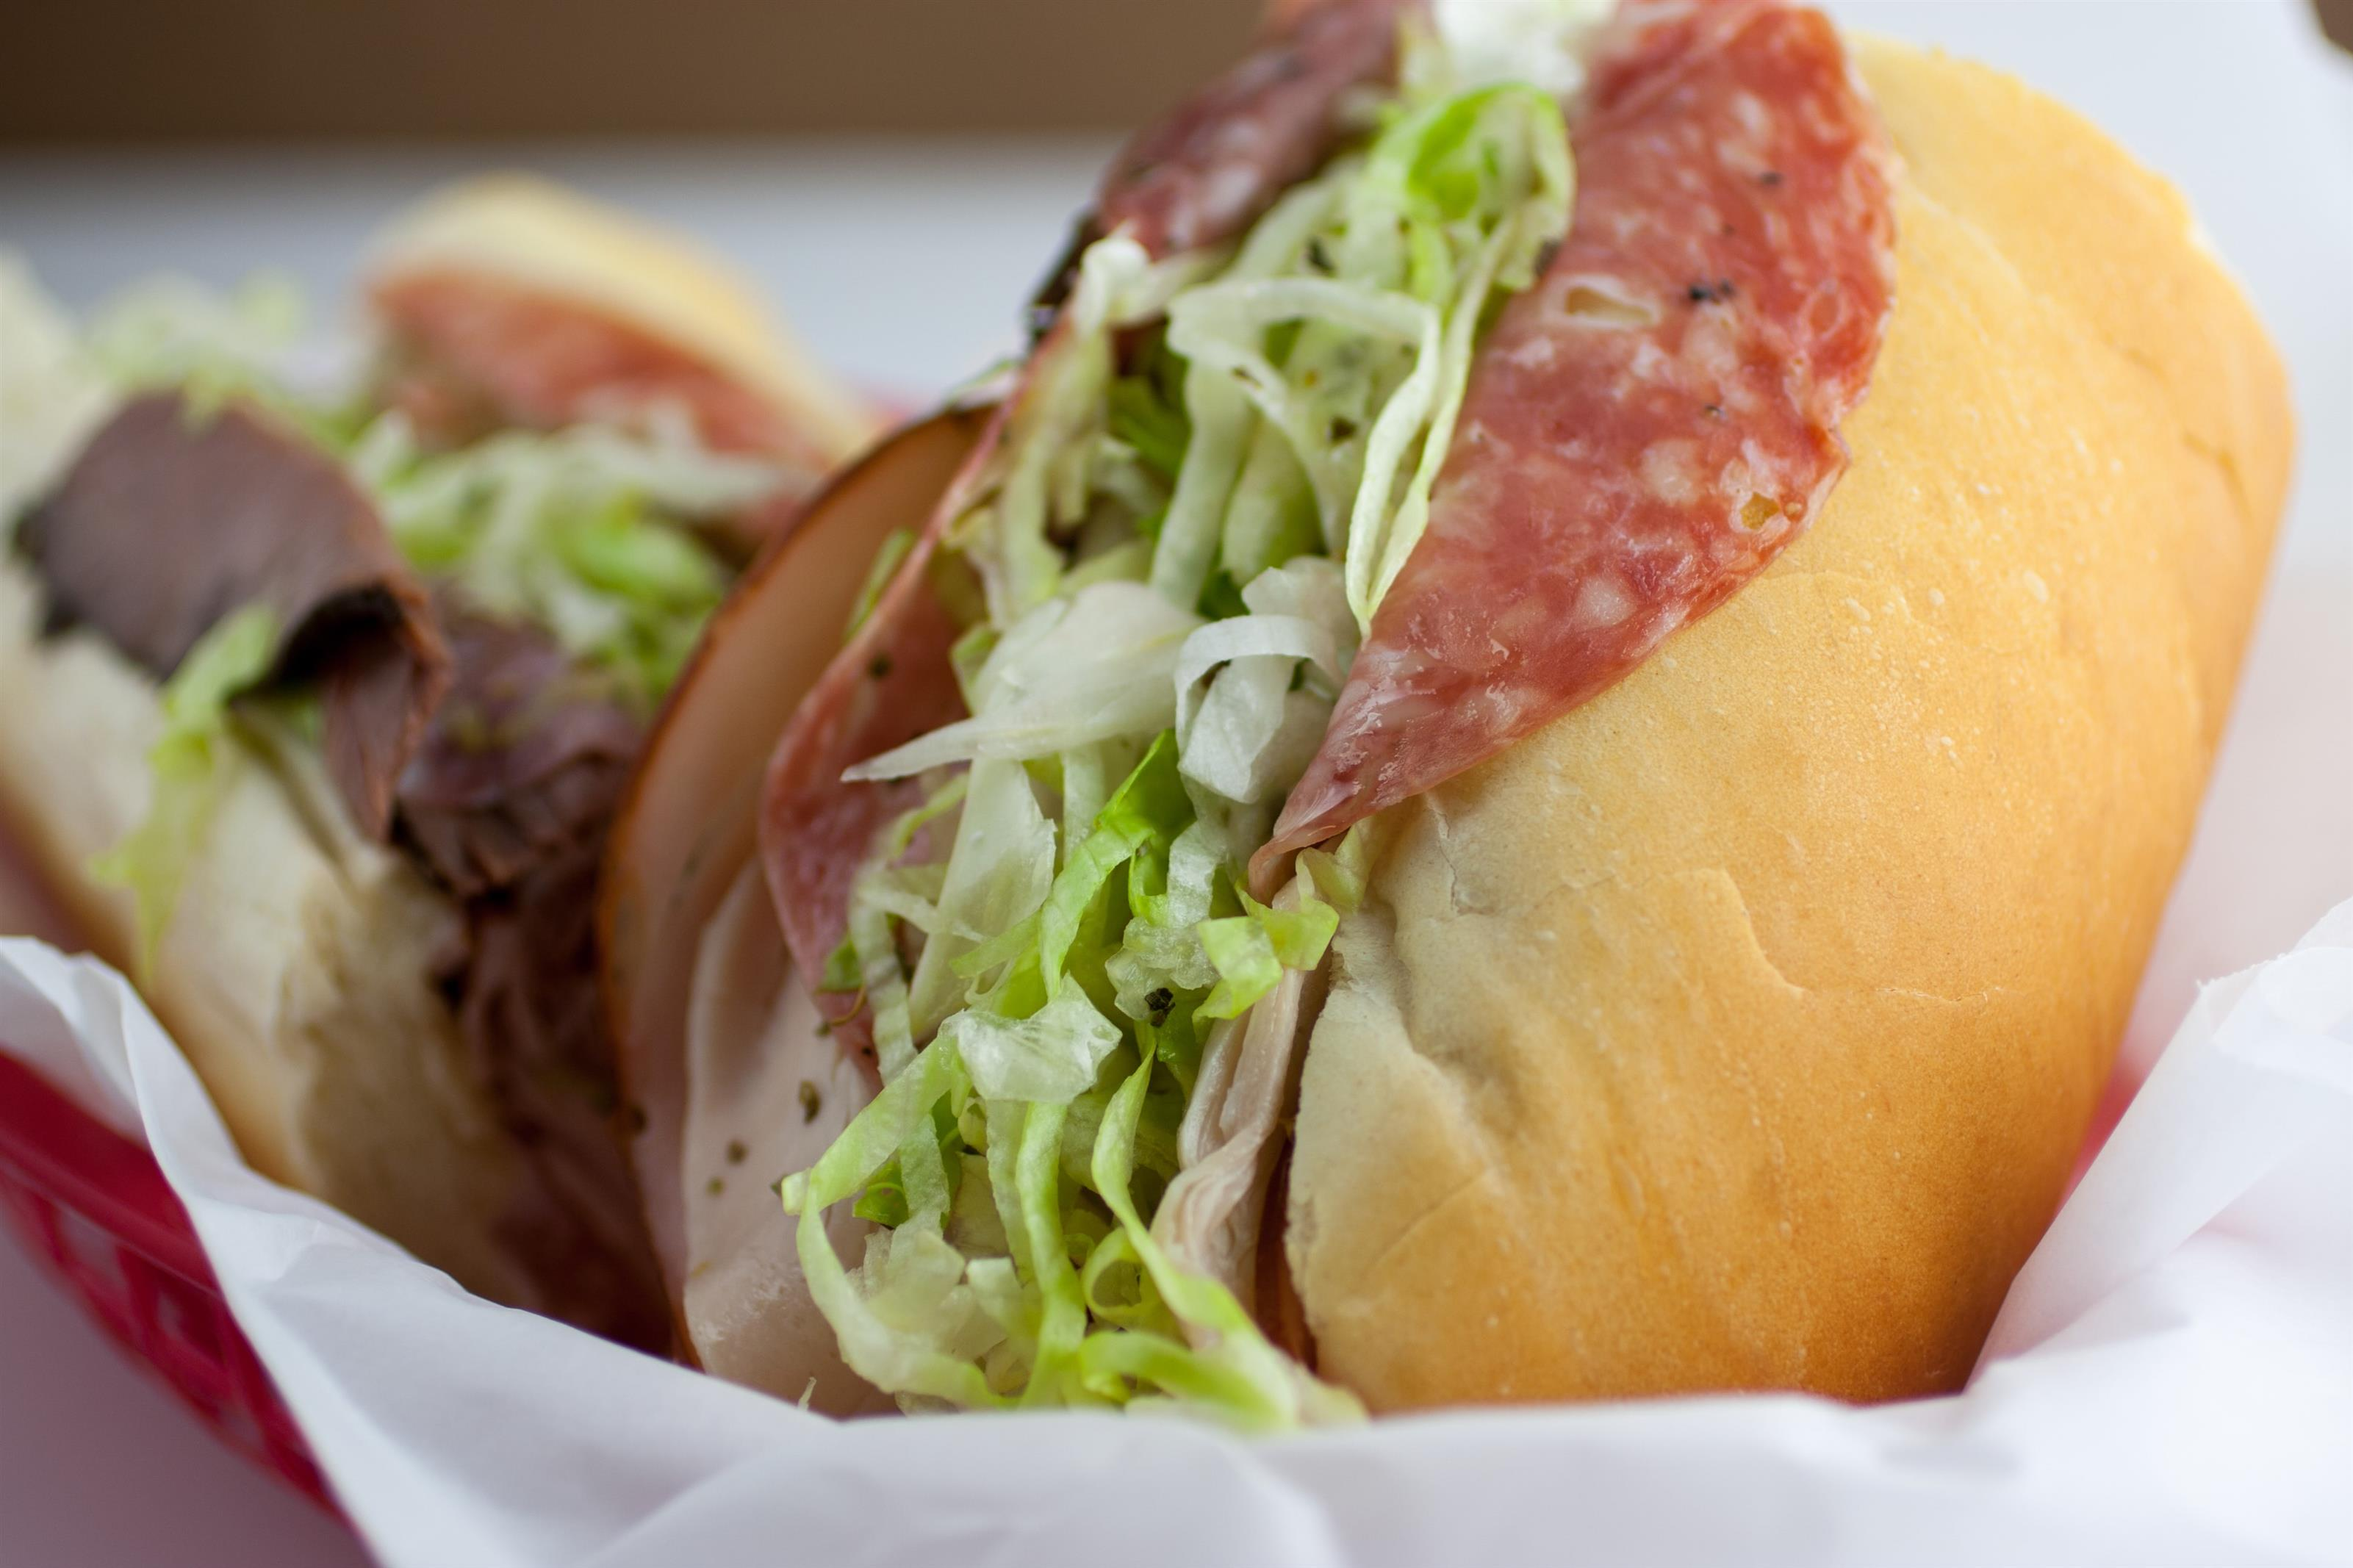 An Italian sub with salami, turkey and lettuce